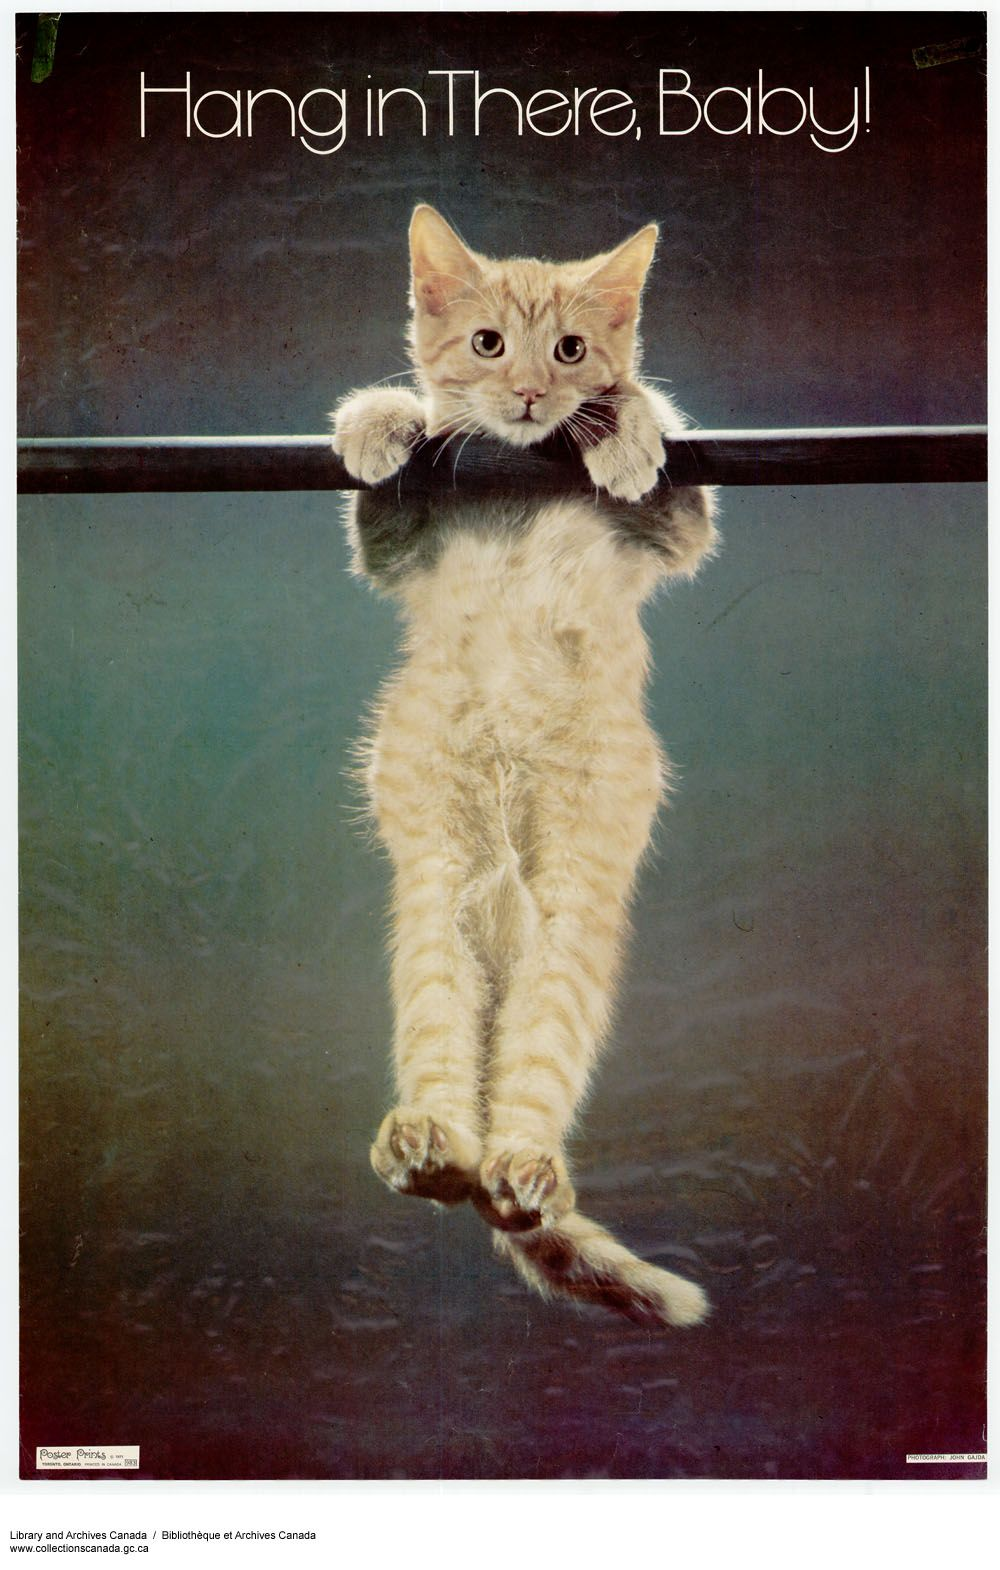 Hang in There, Baby - Cute Cat Poster - Nostalgia Collect